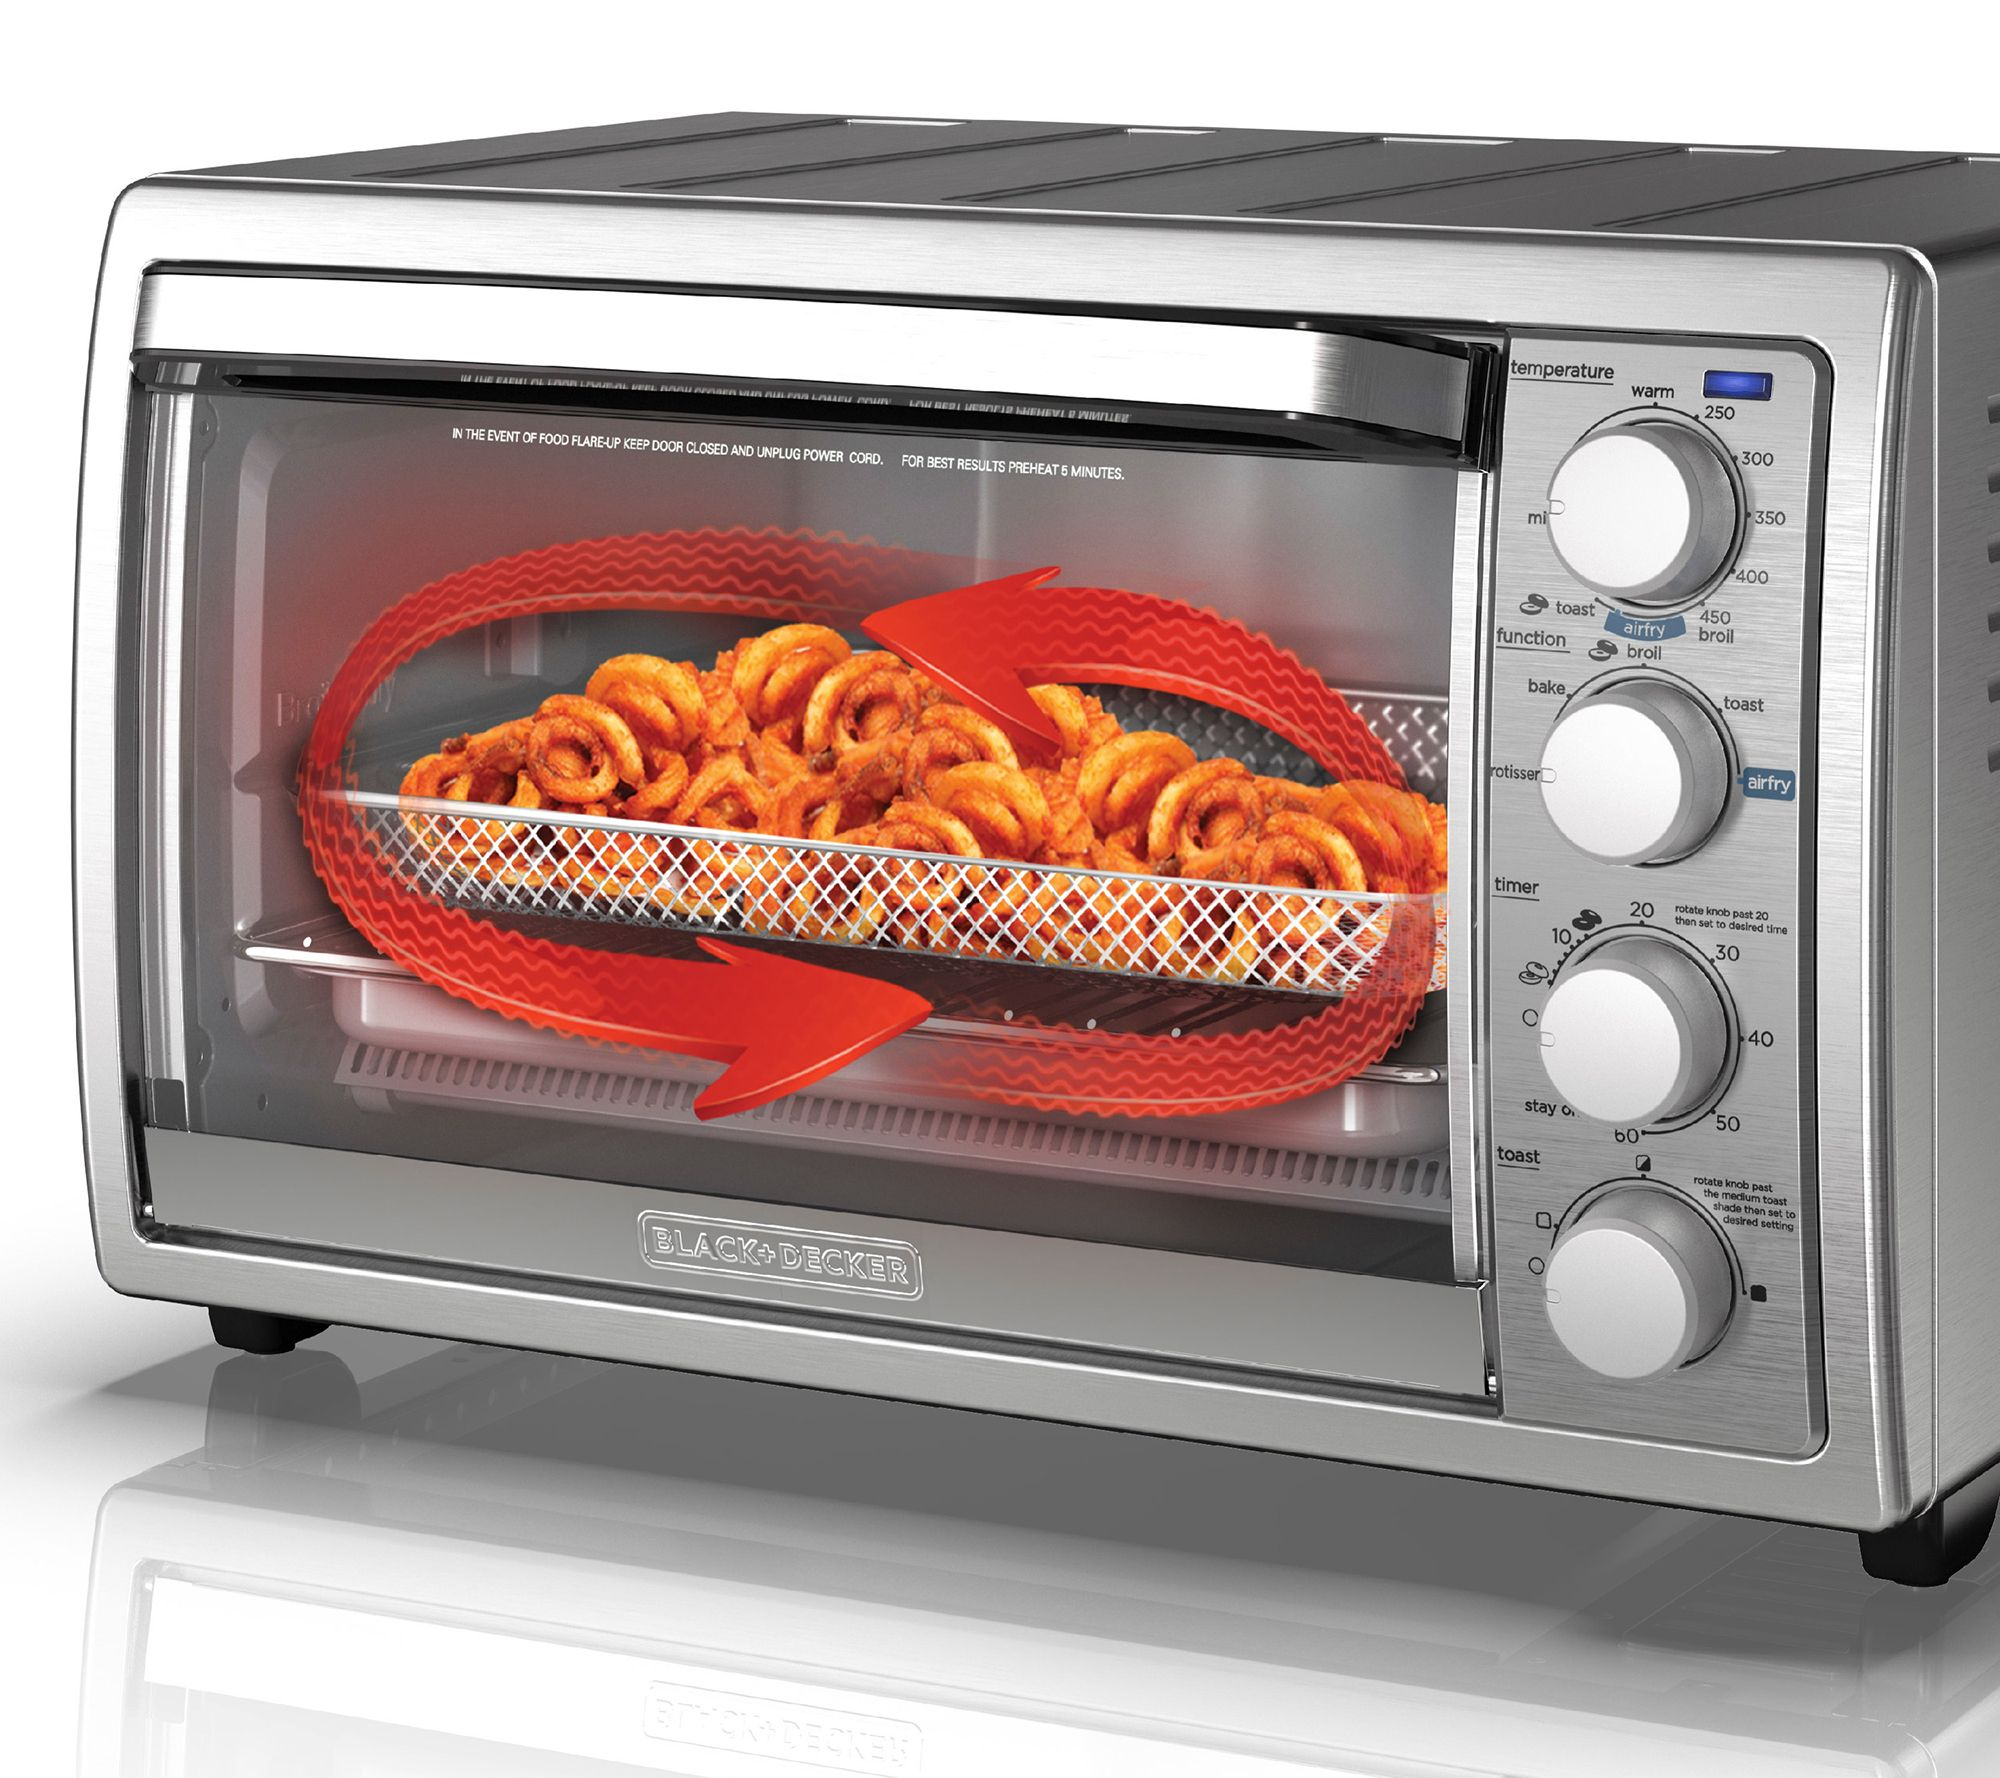 Black & Decker Air Fryer Toaster Oven with Rotisserie